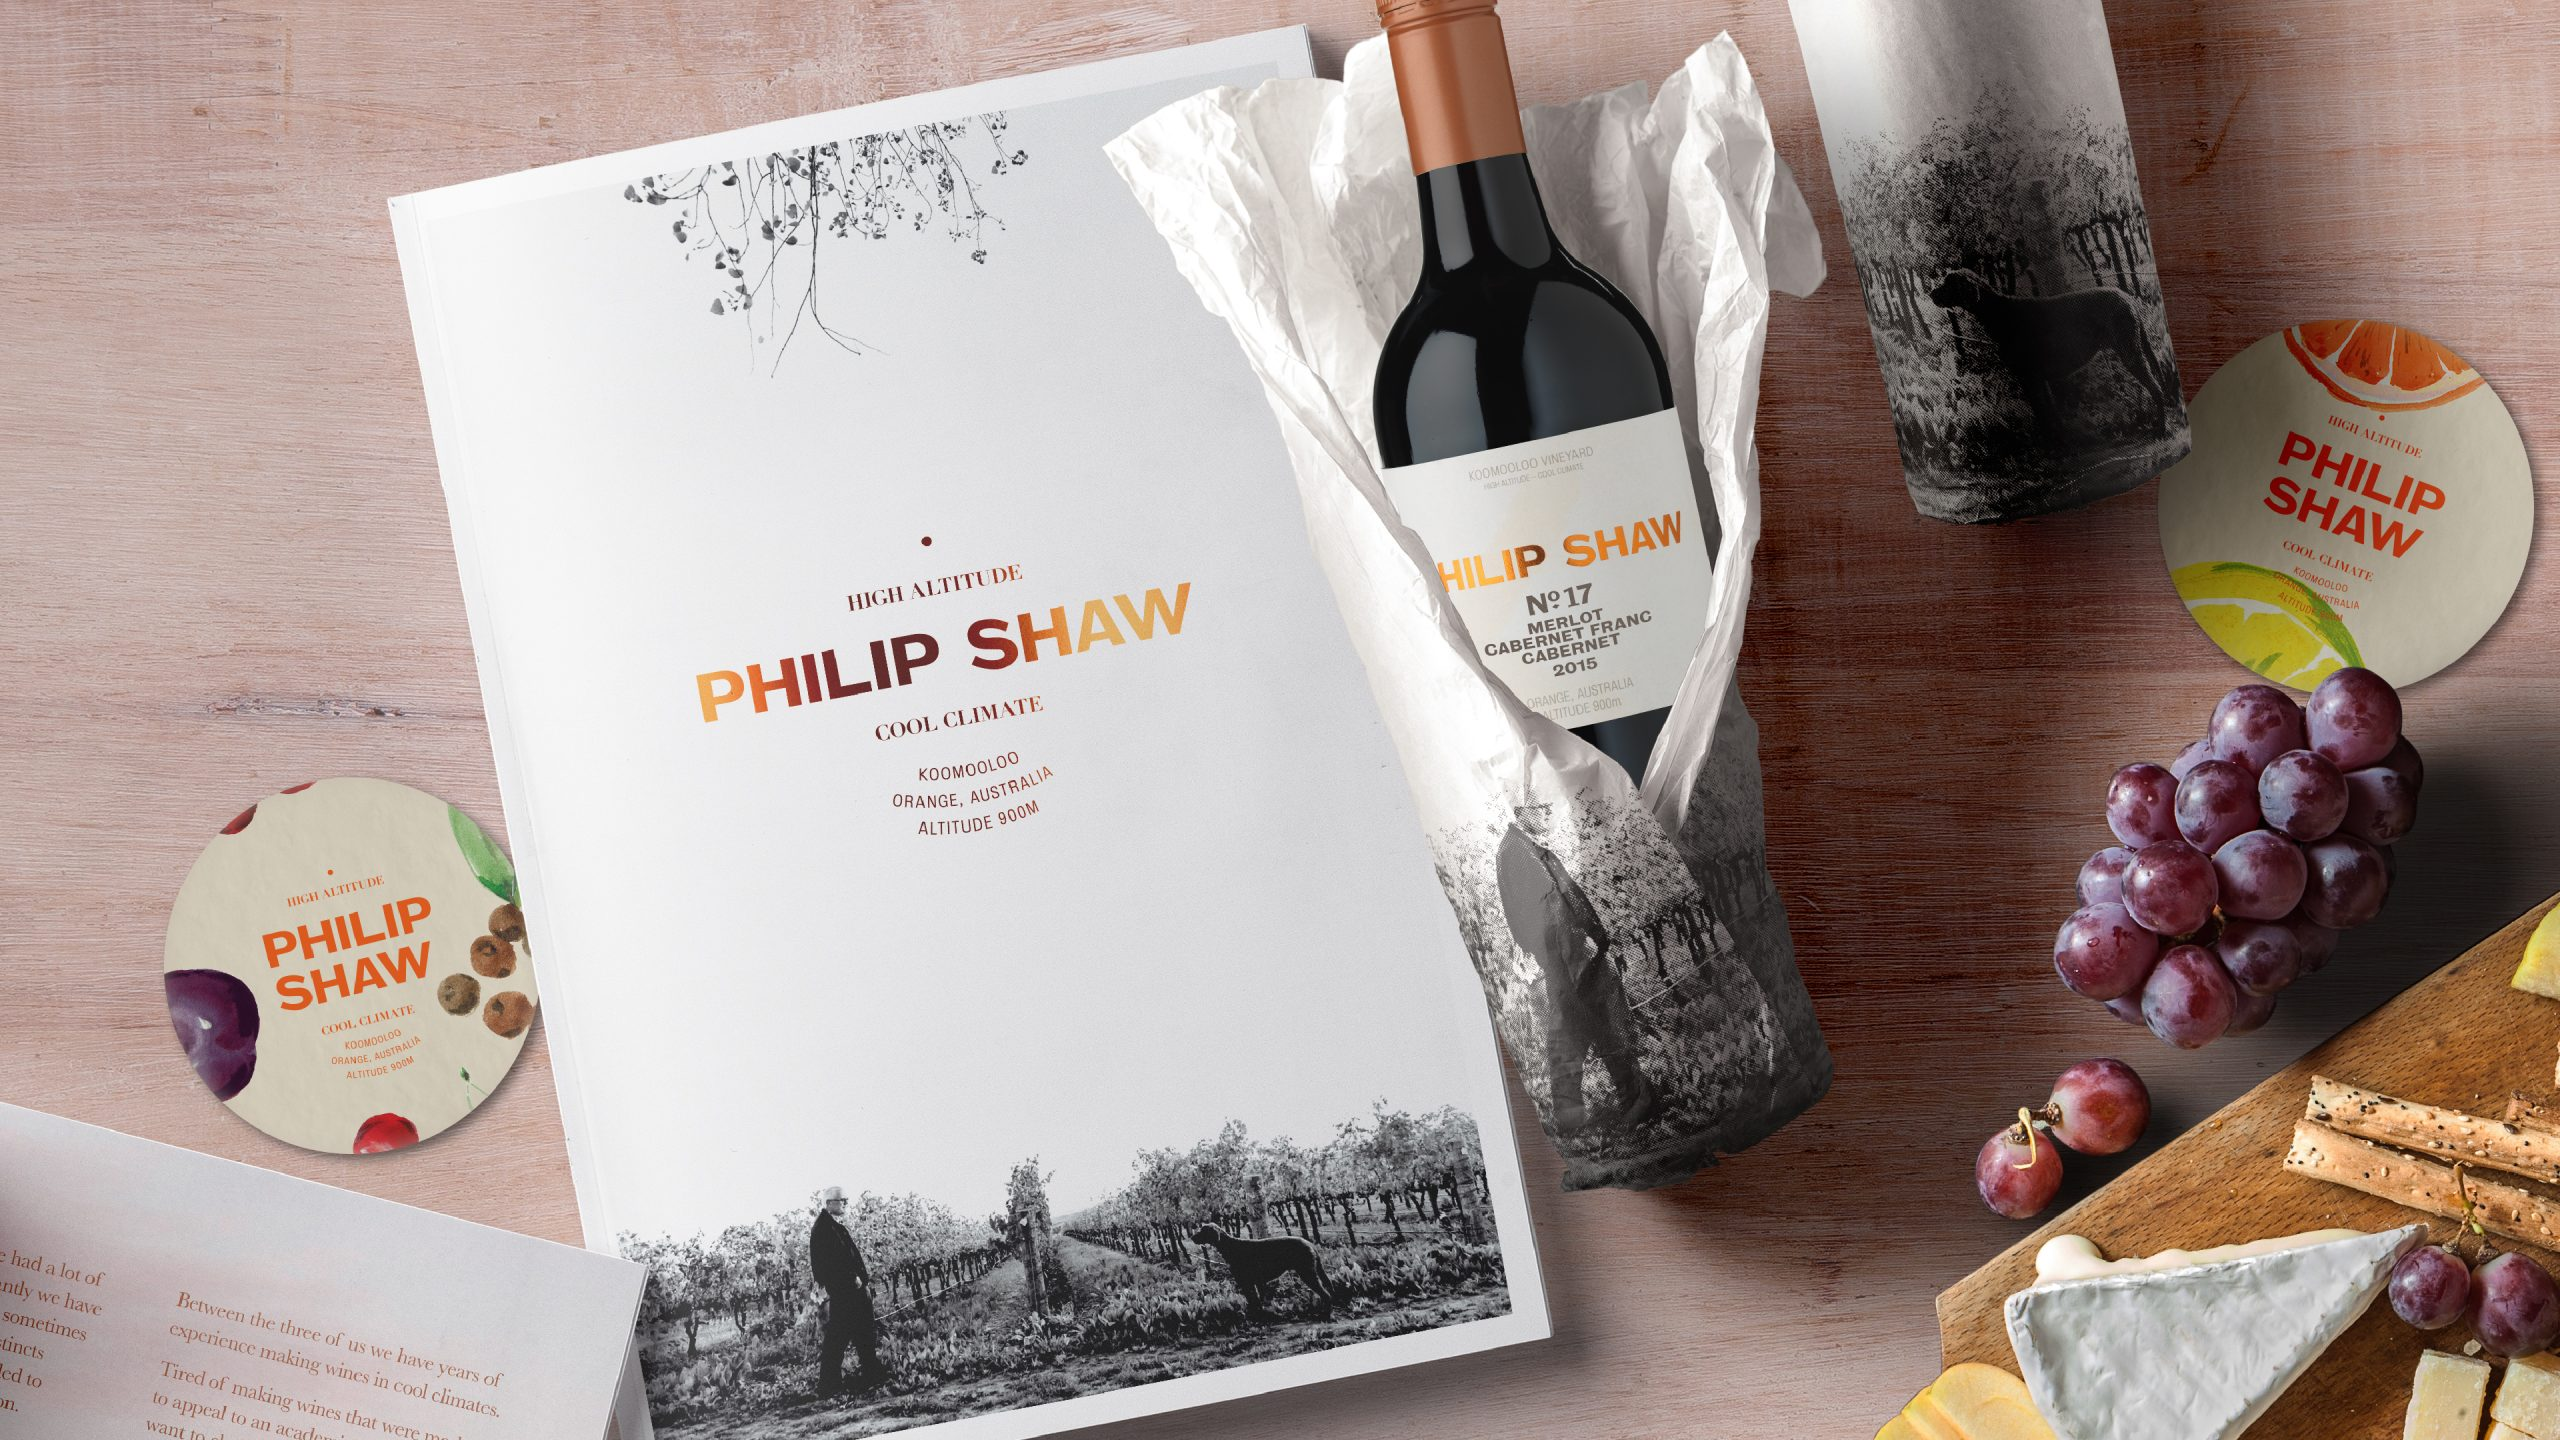 Philip Shaw Wines products arranged on a bench top with grapes and a chessboard. Image highlights the brand and packaging designed by Helium Design Melbourne.